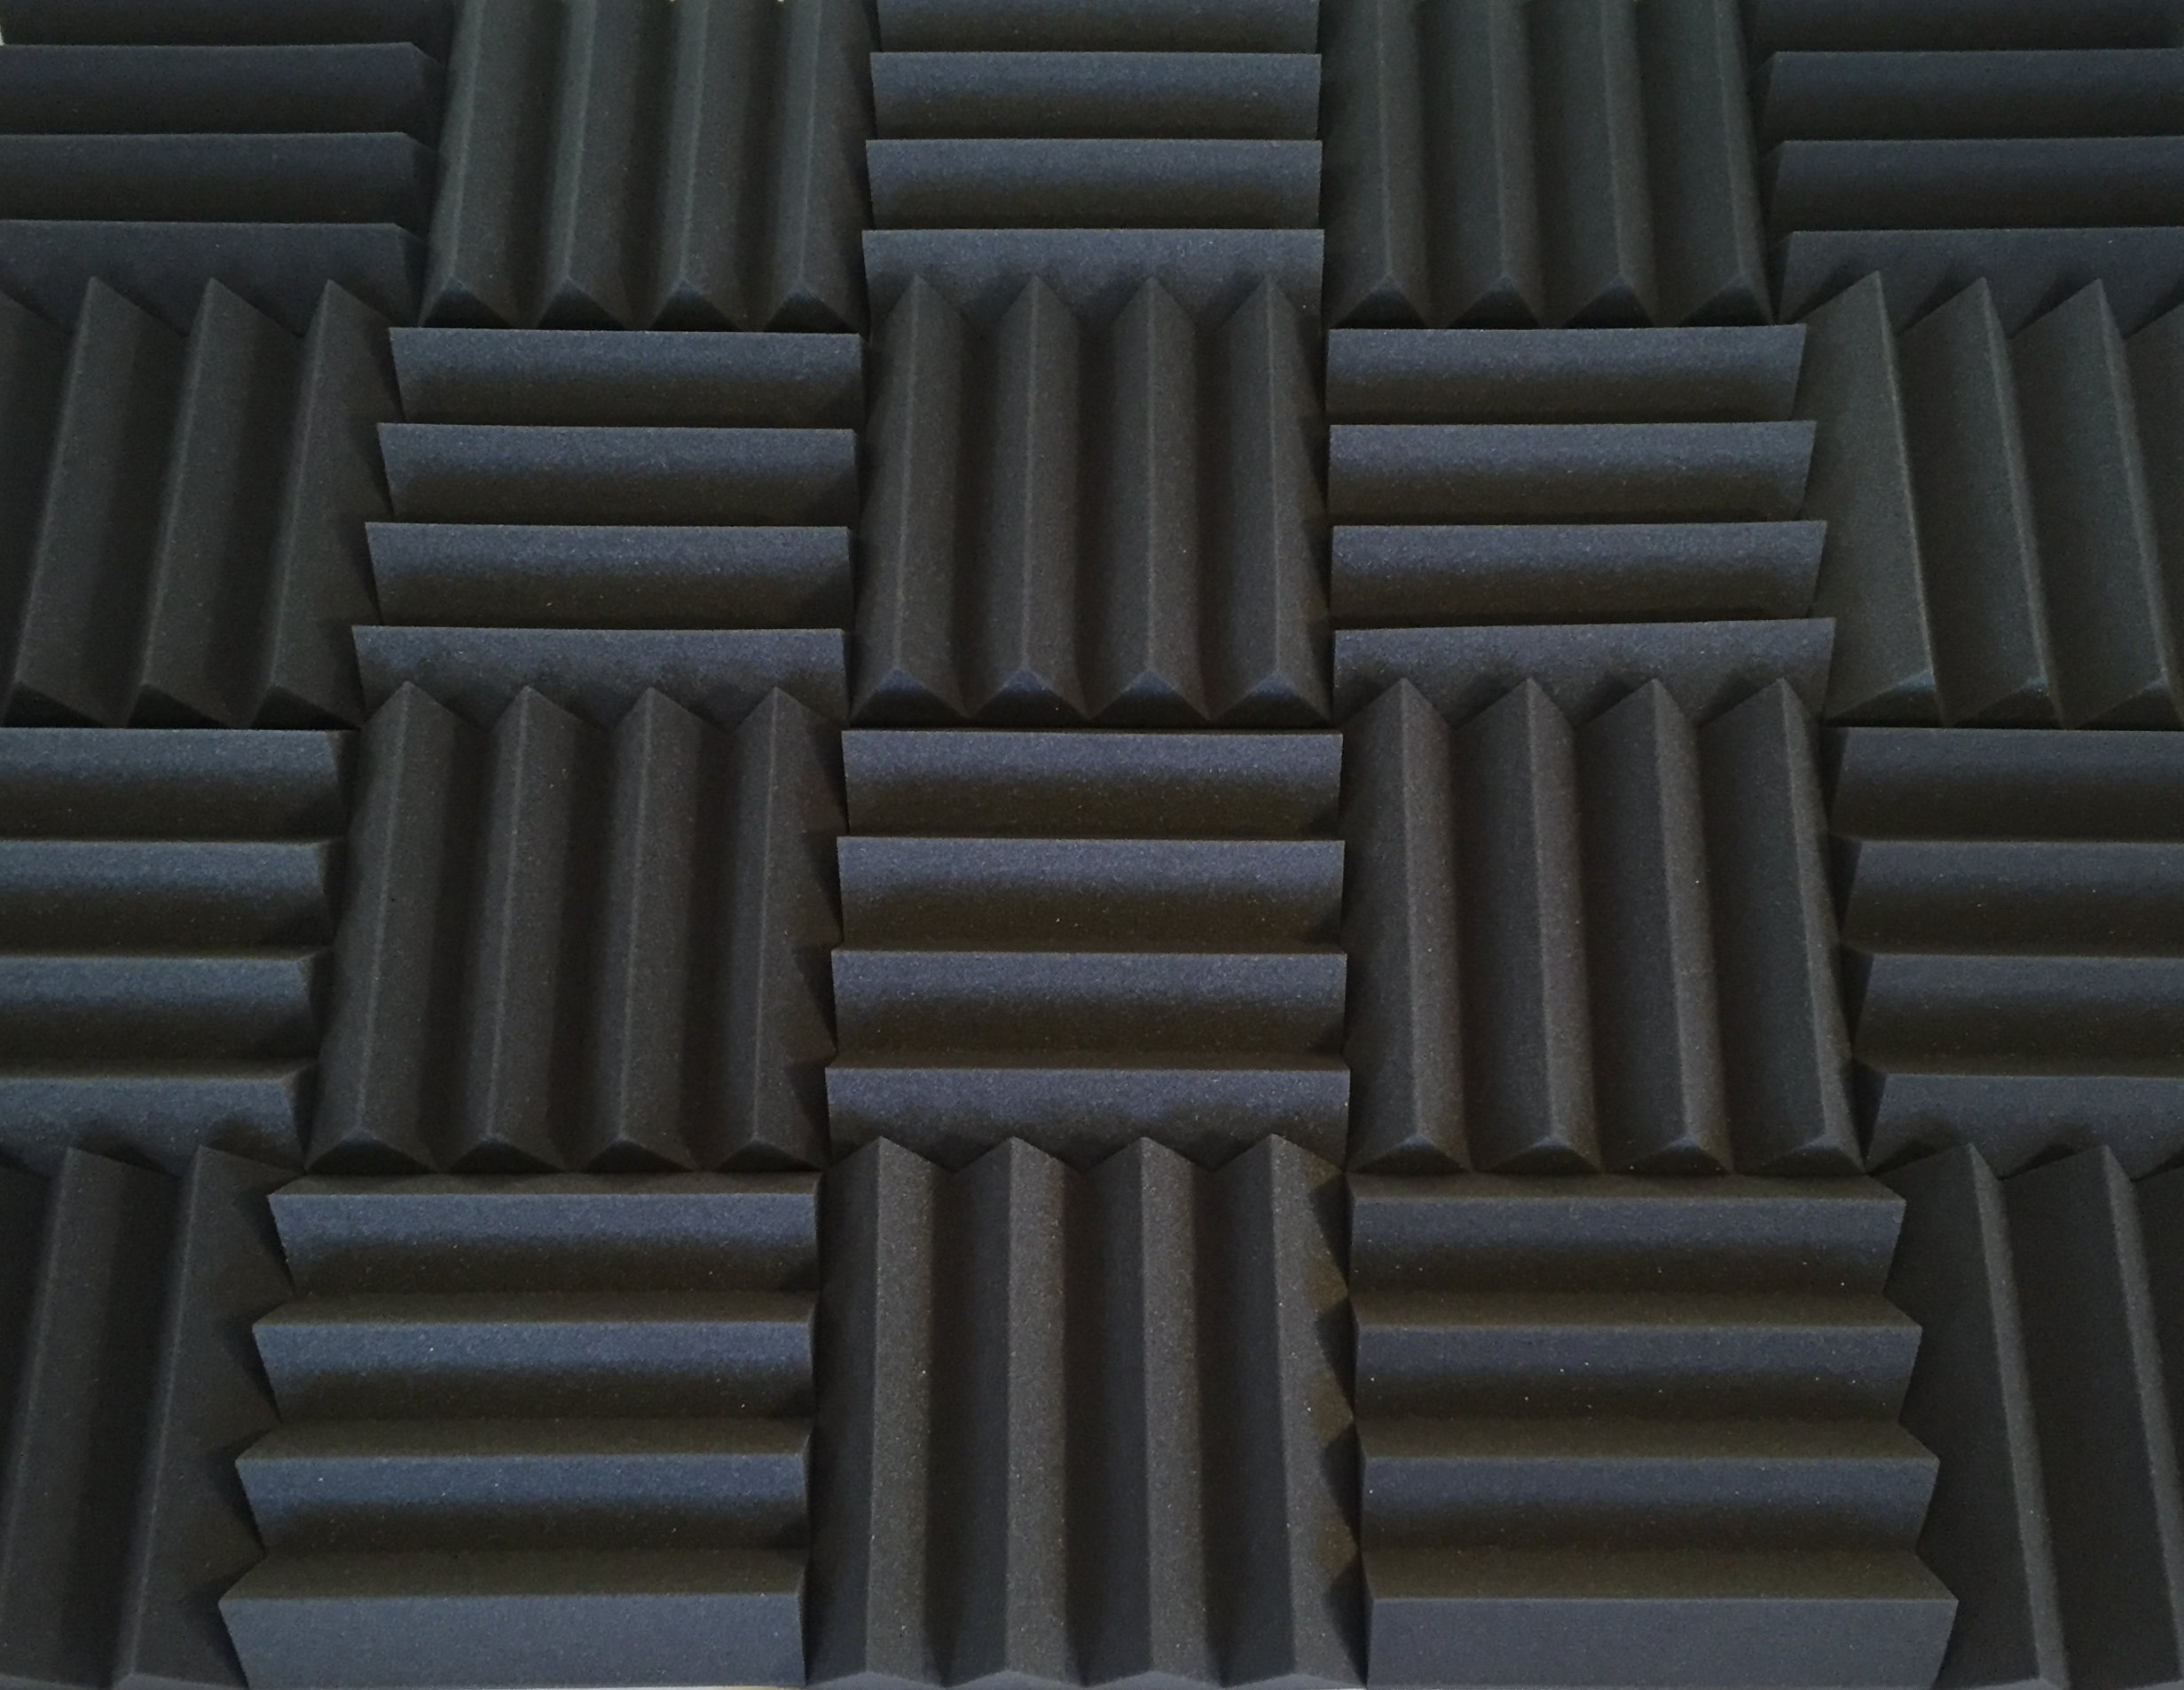 Bass Absorbing Wedge Style Panels - Soundproofing Acoustic Studio Foam - 12''x12''x3'' Tiles - 2 Pack - DIY